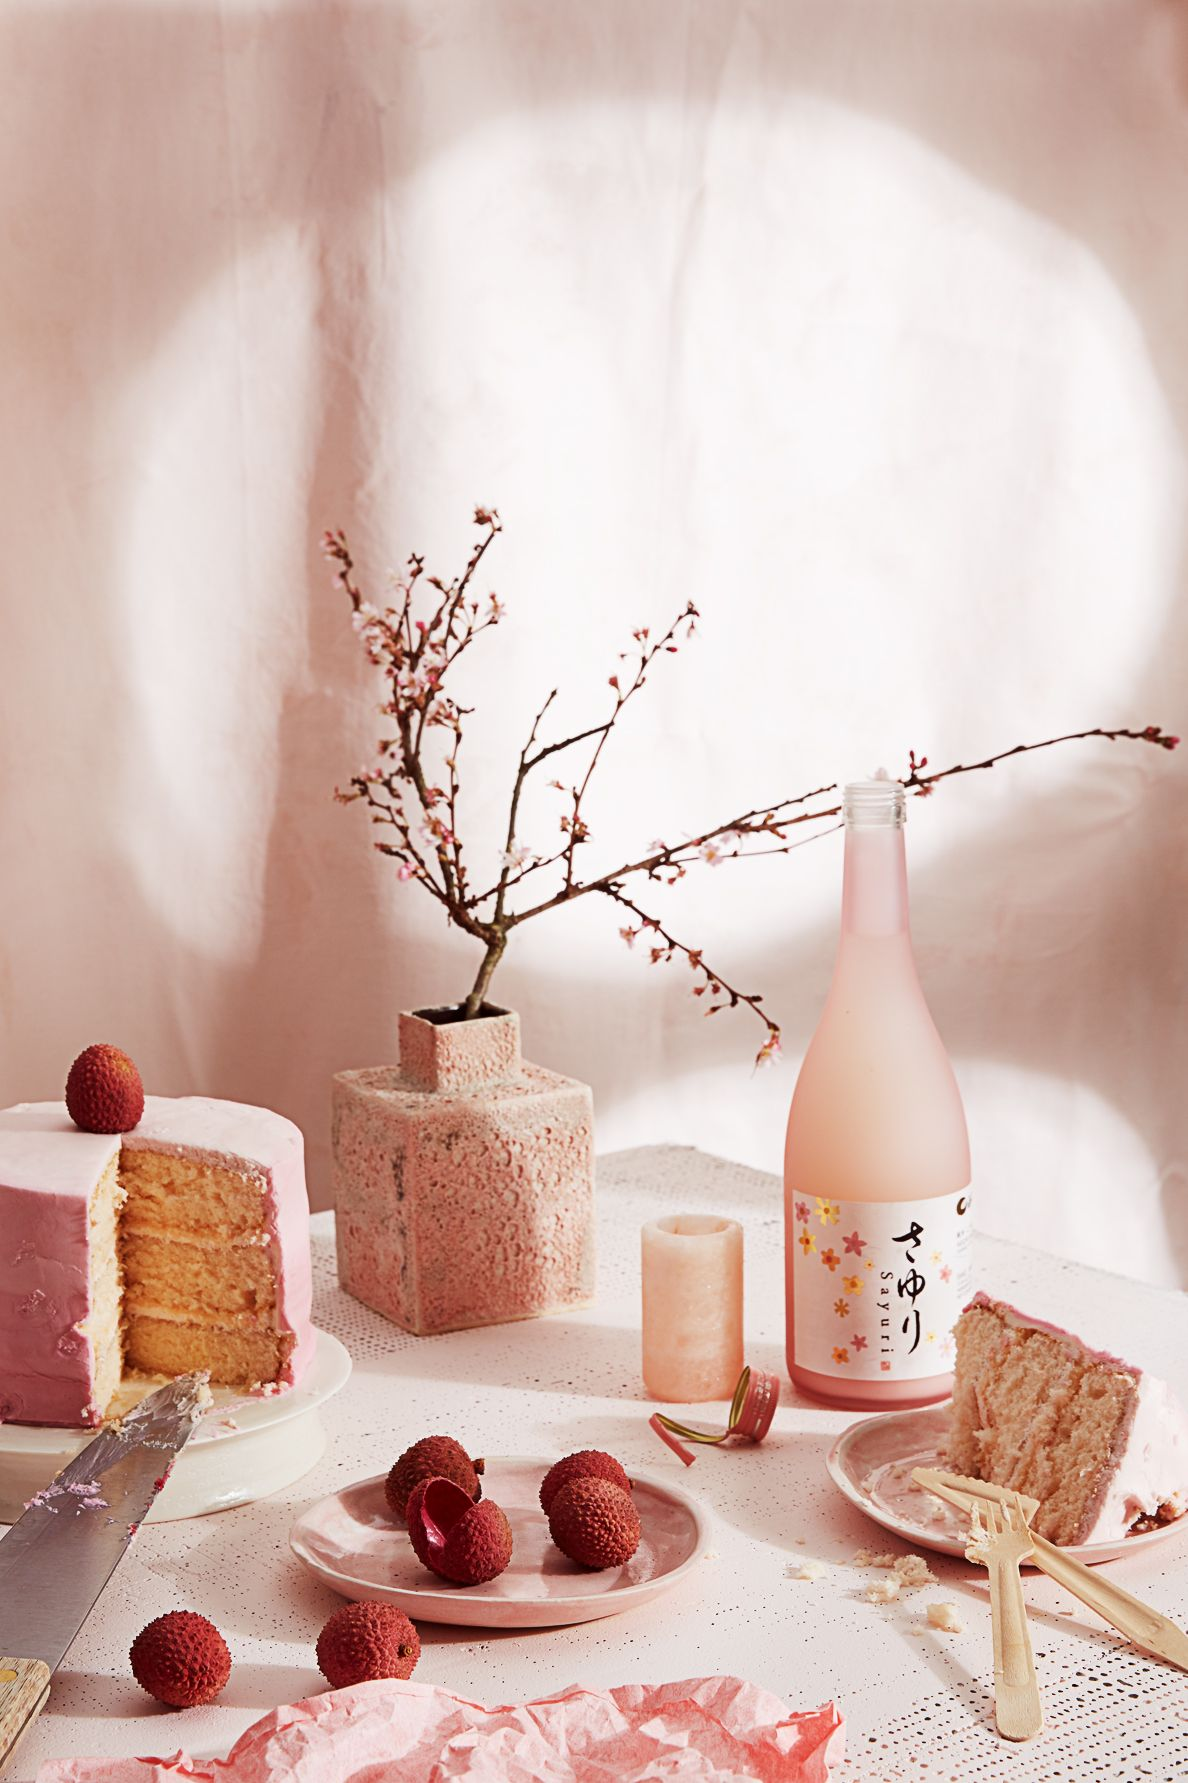 Pink sake and cake with berries